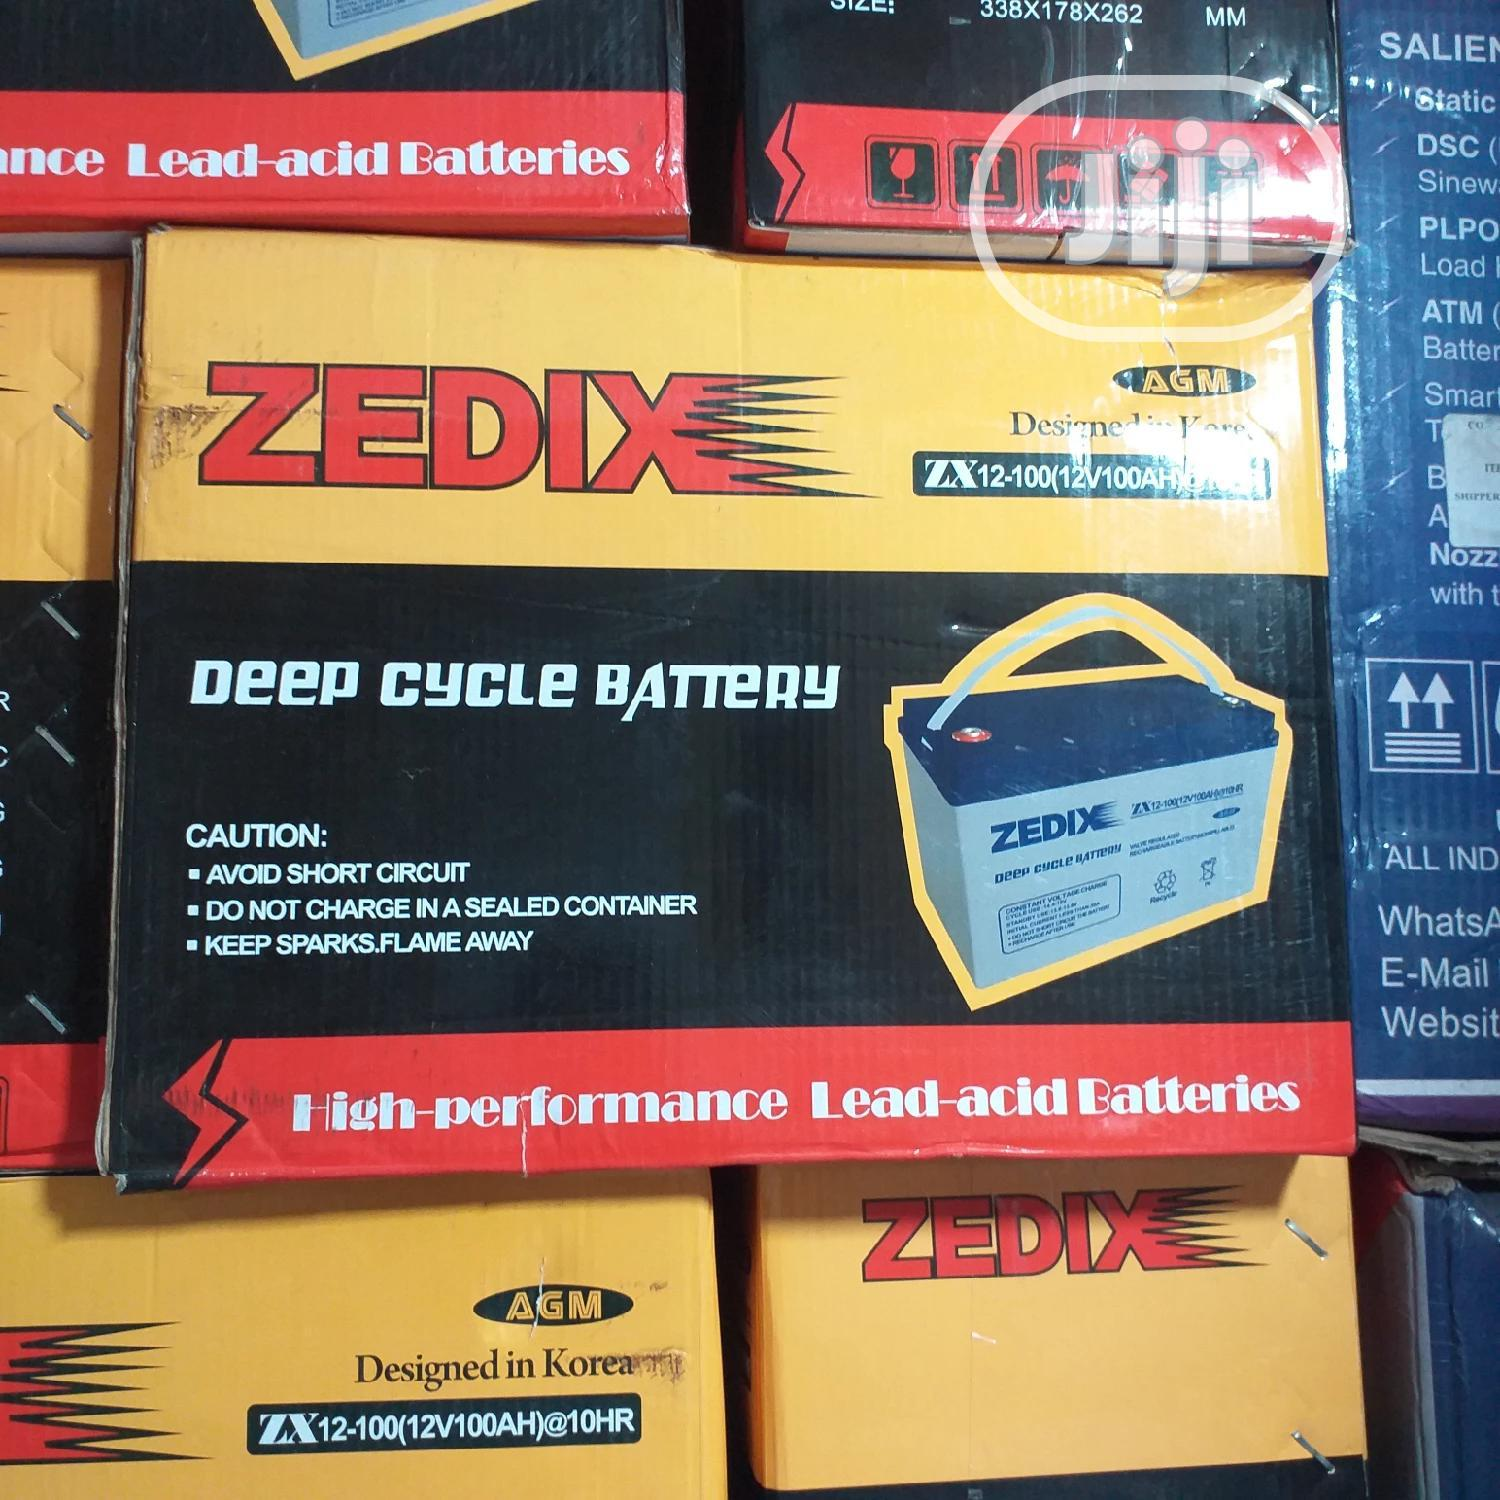 Zedix Deep Cycle Battery 12V 100ah